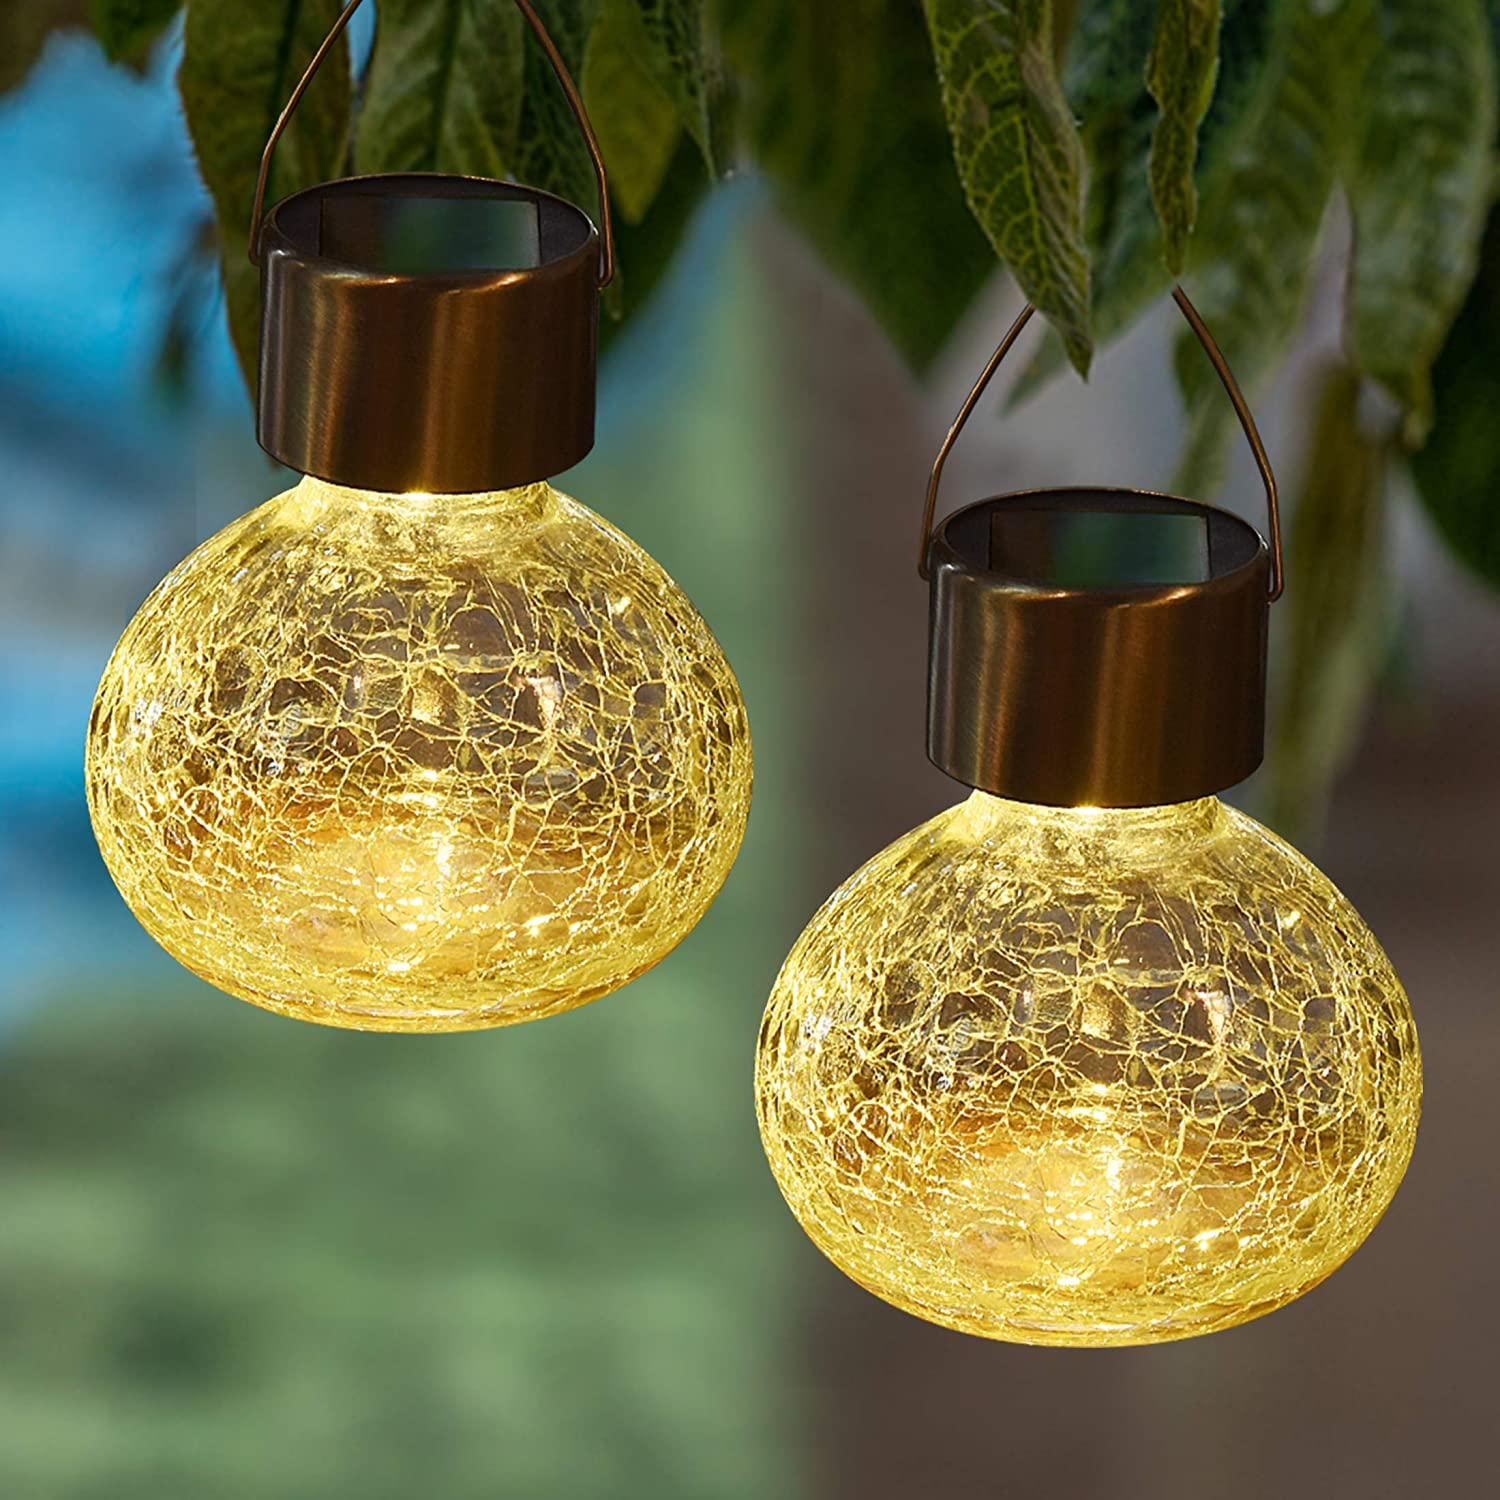 MAGGIFT 6 Pack Solar Hanging Jar Lights Outdoor Solar Christmas Lantern Cracked Glass Decorative Garden Tree Lights for Yard, Garden, Patio, Holiday Party Decorations, Warm White